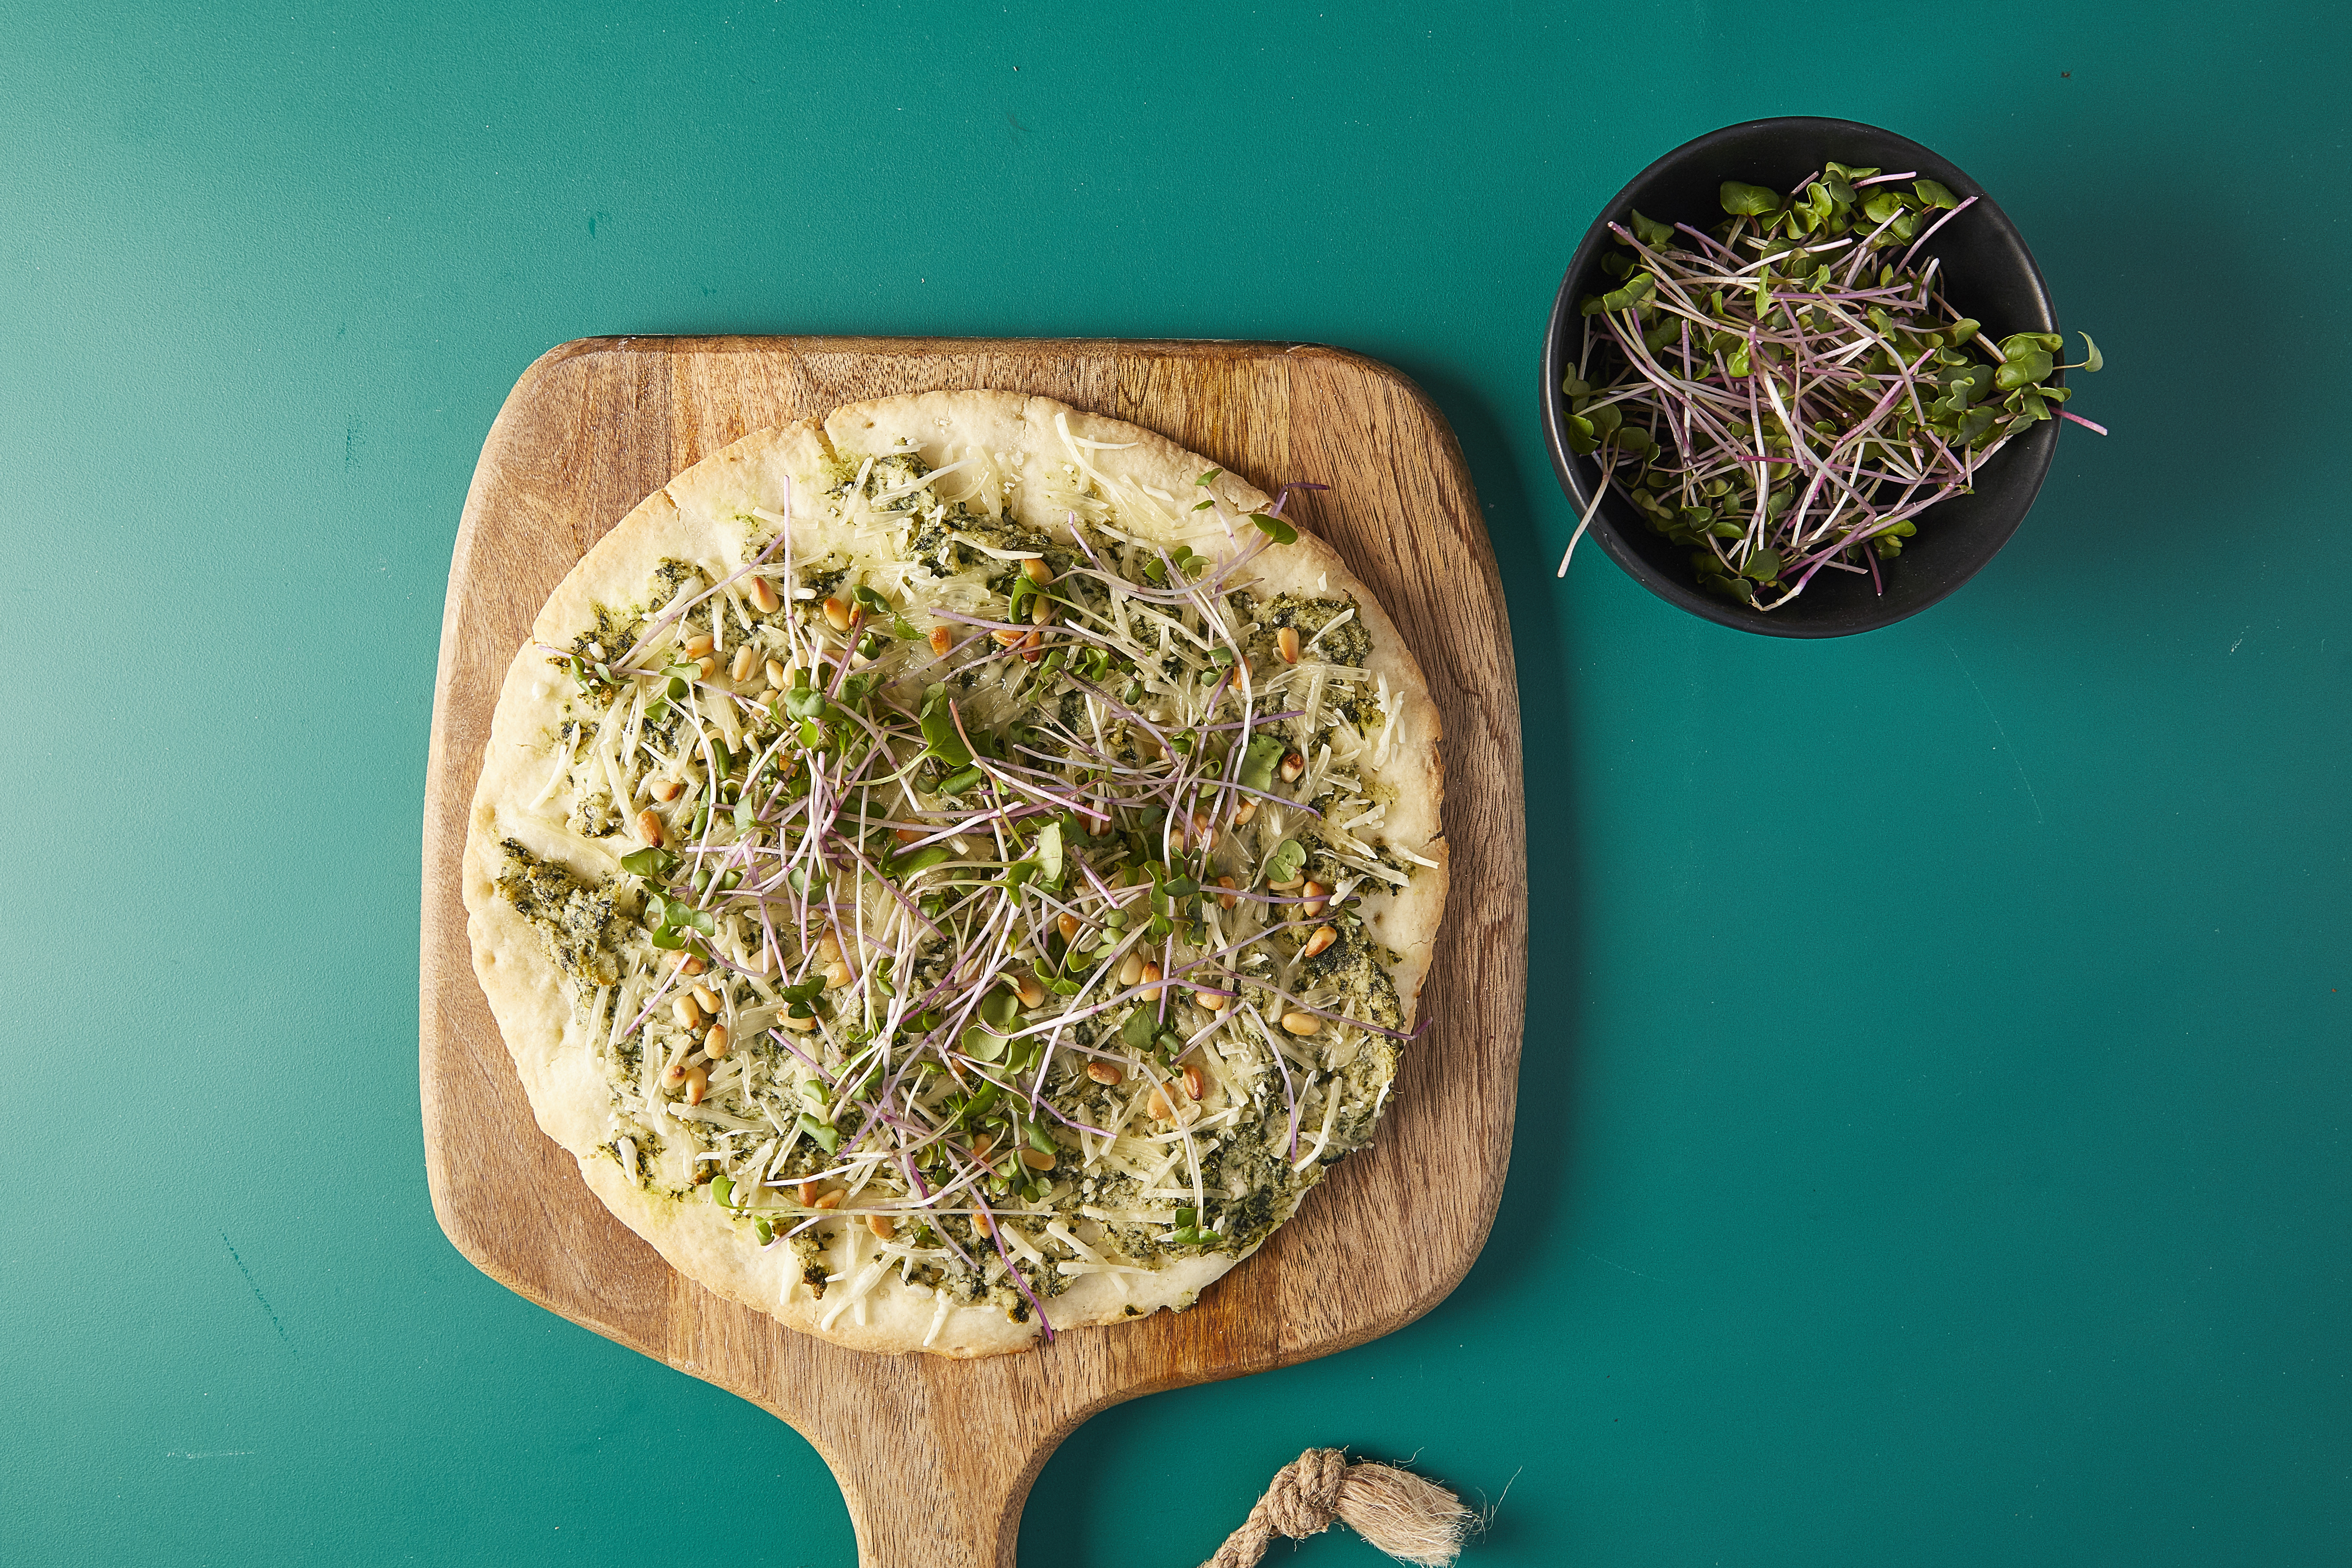 Vegan Feta and Spinach Pizza